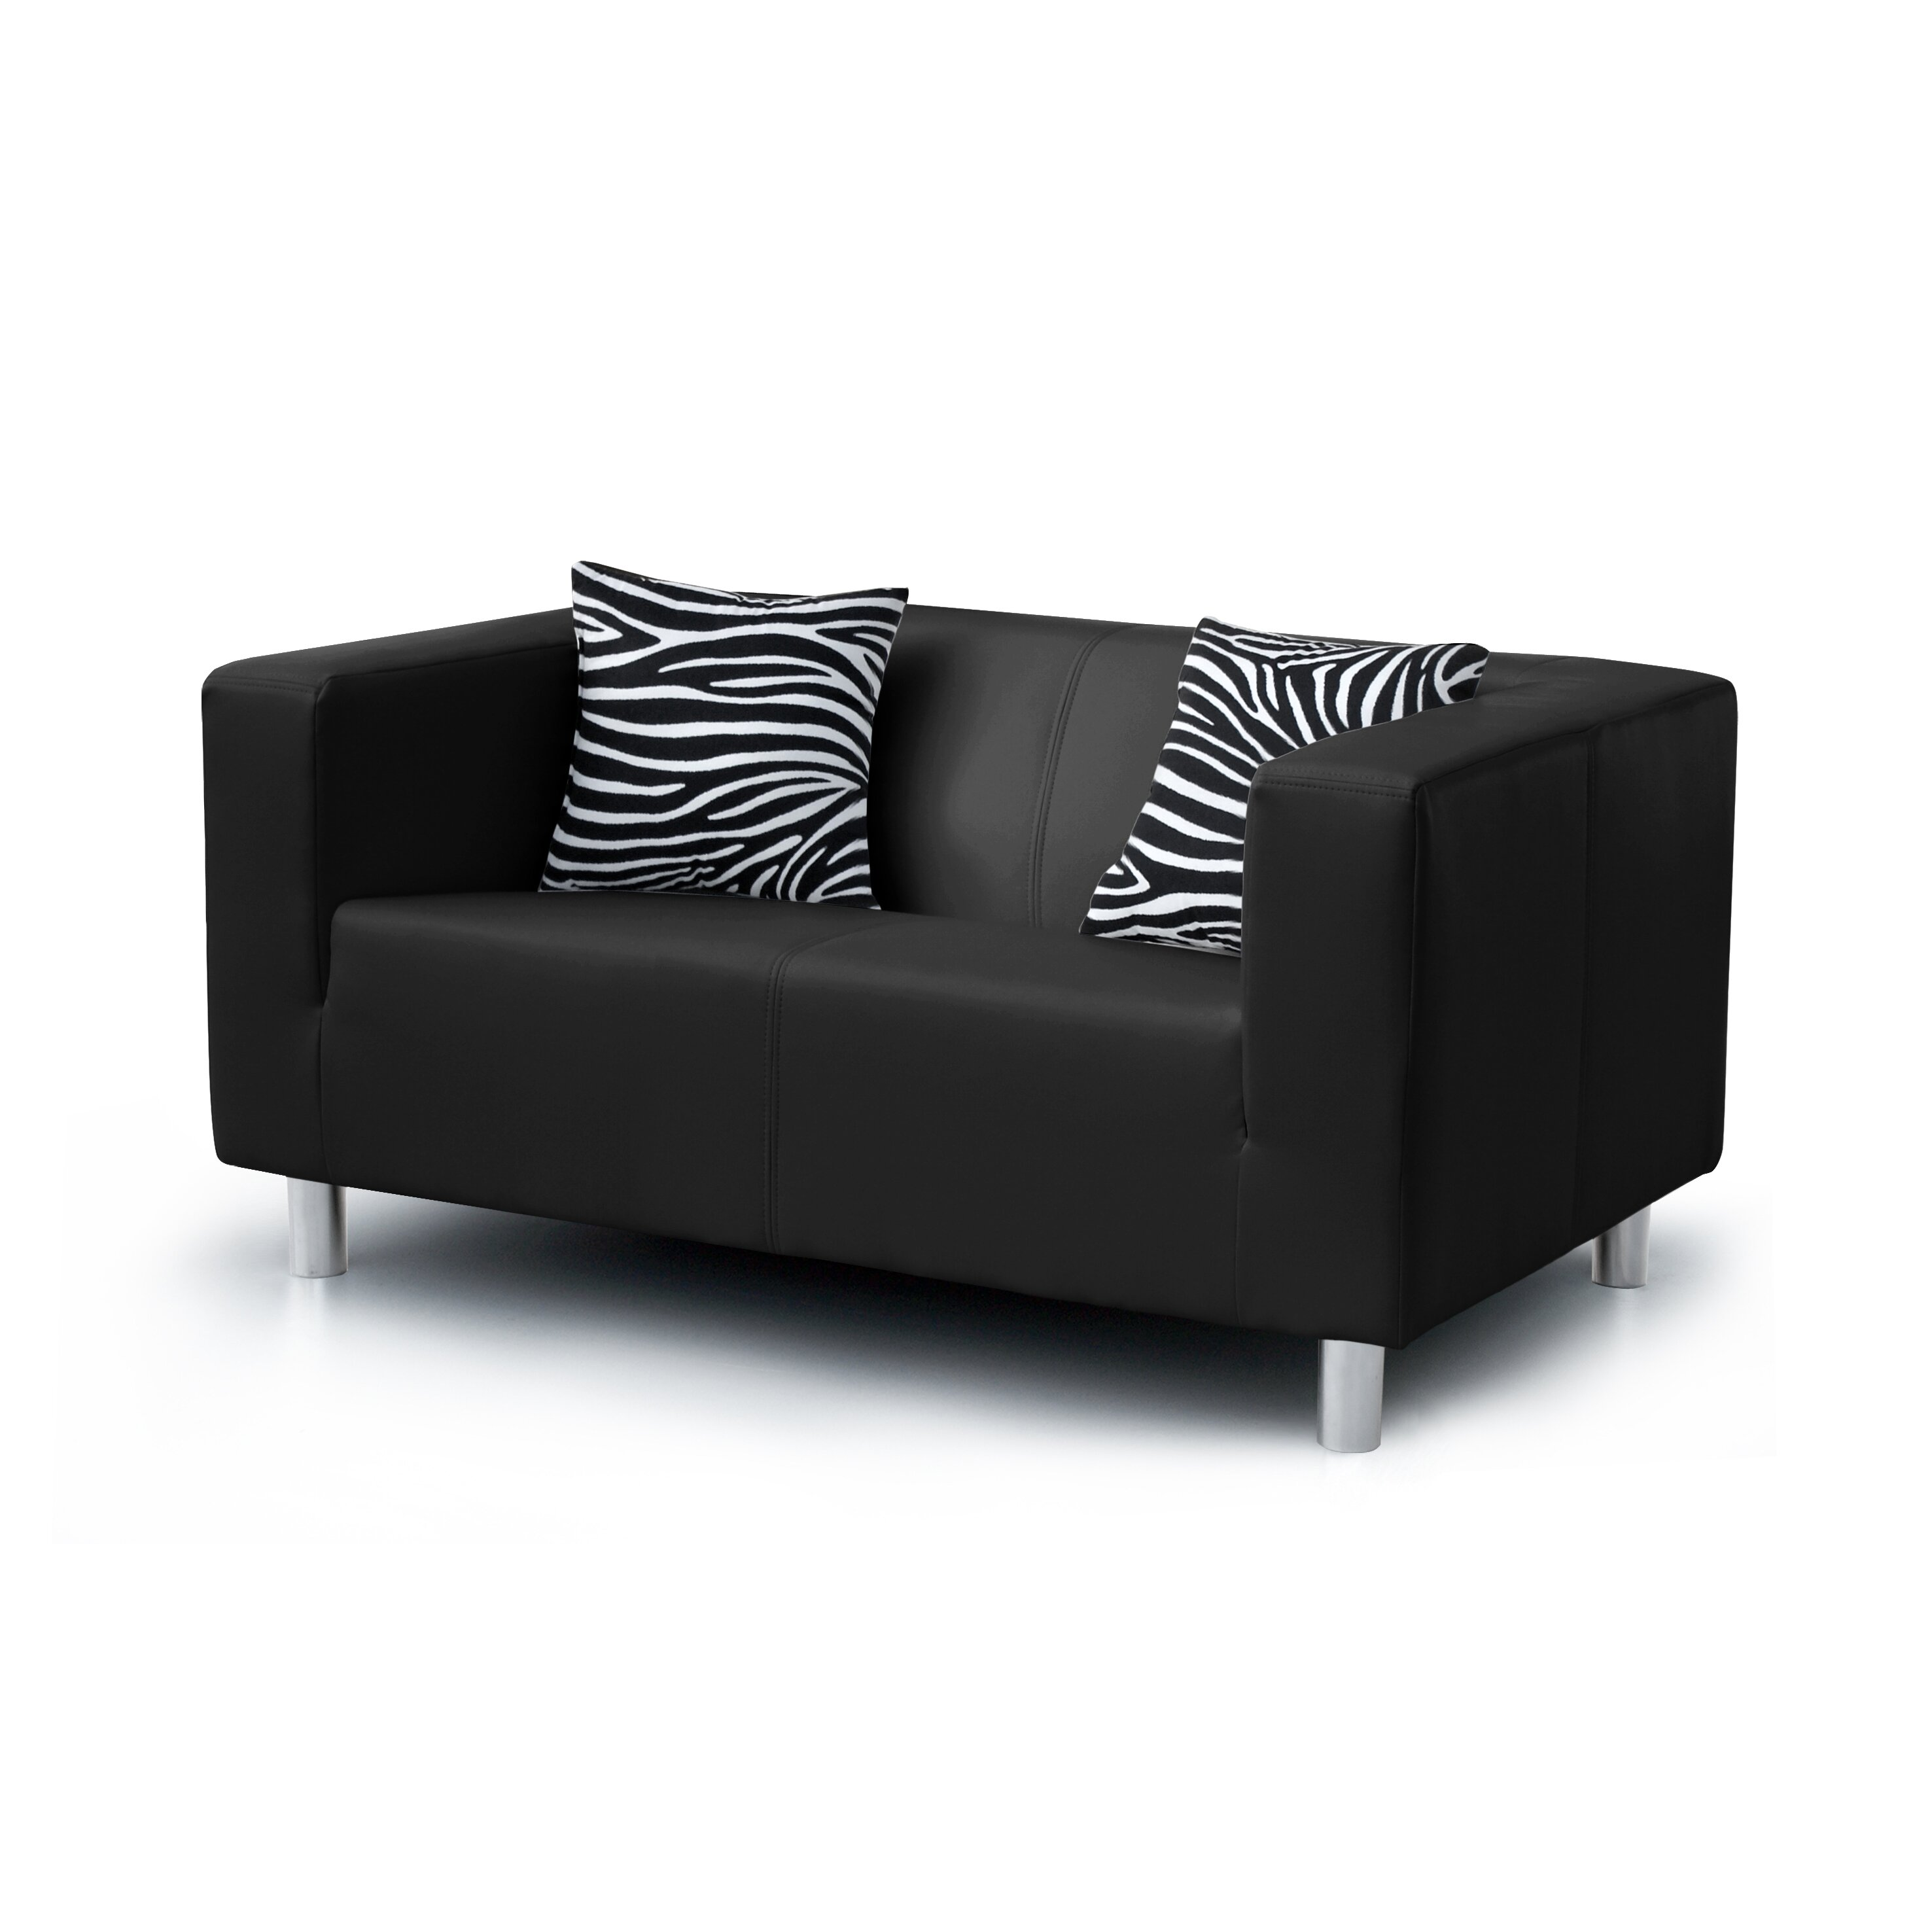 sofa mooki mit zebra kissen von home haus. Black Bedroom Furniture Sets. Home Design Ideas